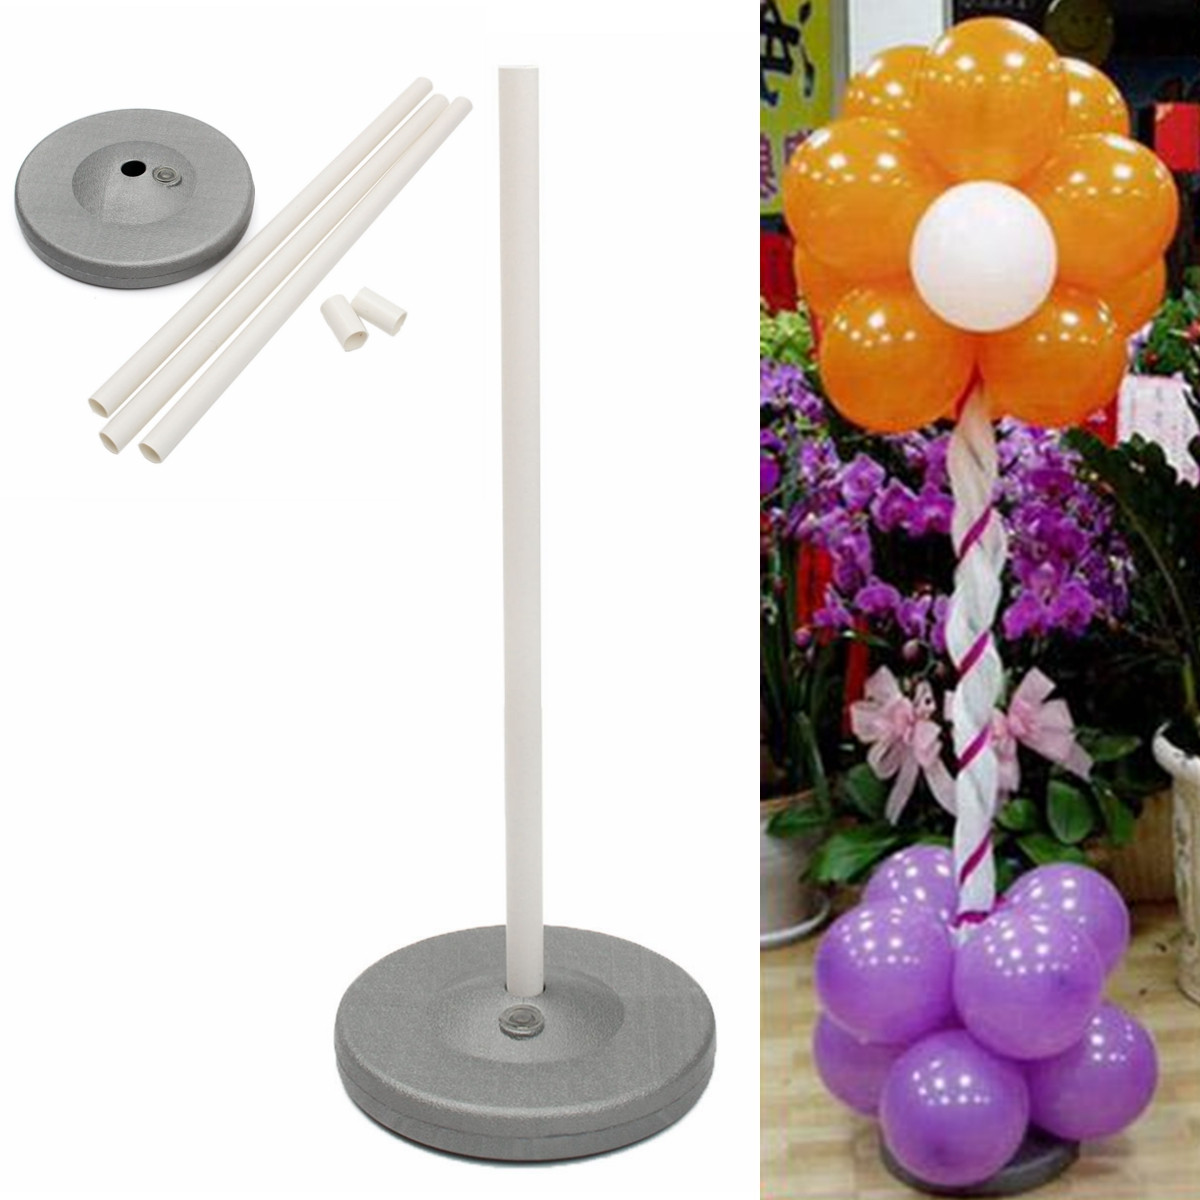 1Set Balloon Column Base Stand Display Kit Water Fillable Base ...